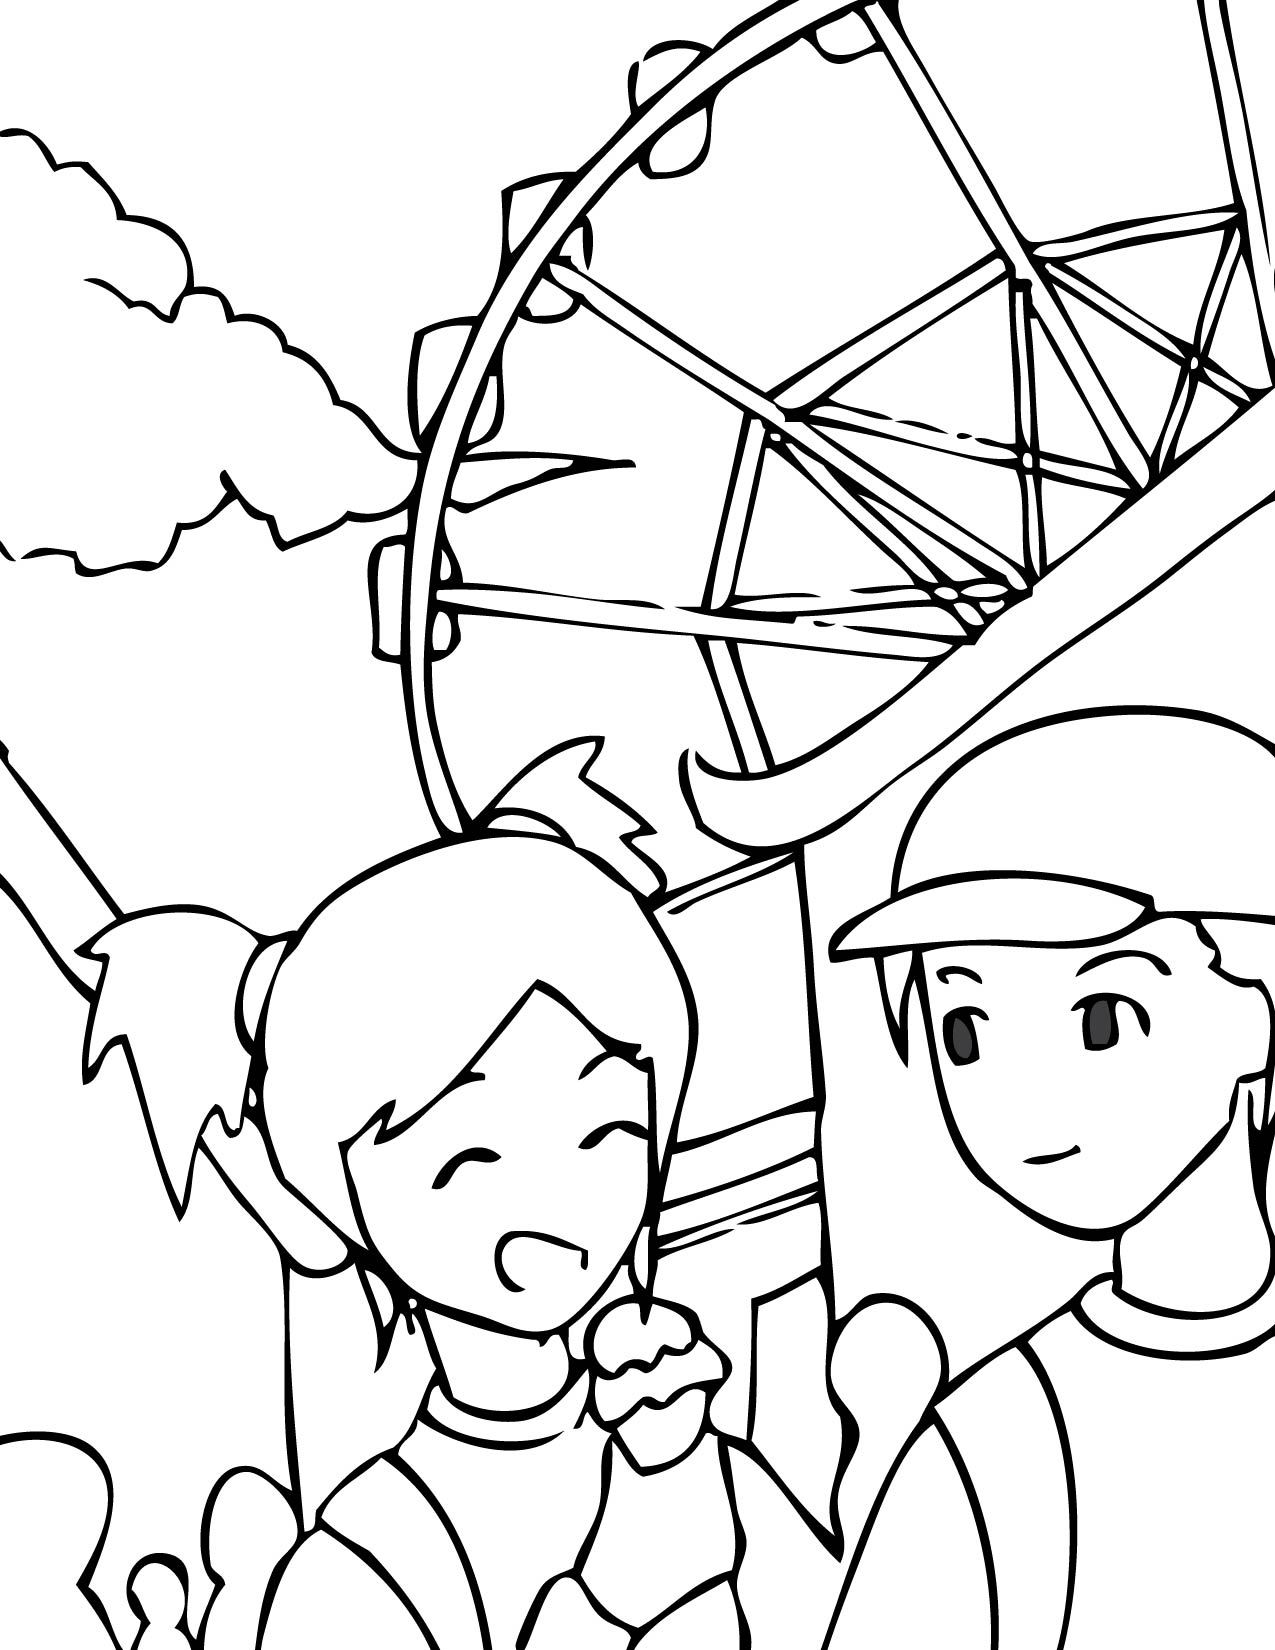 1275x1650 Highest Theme Park Coloring Pages Page Handipoints